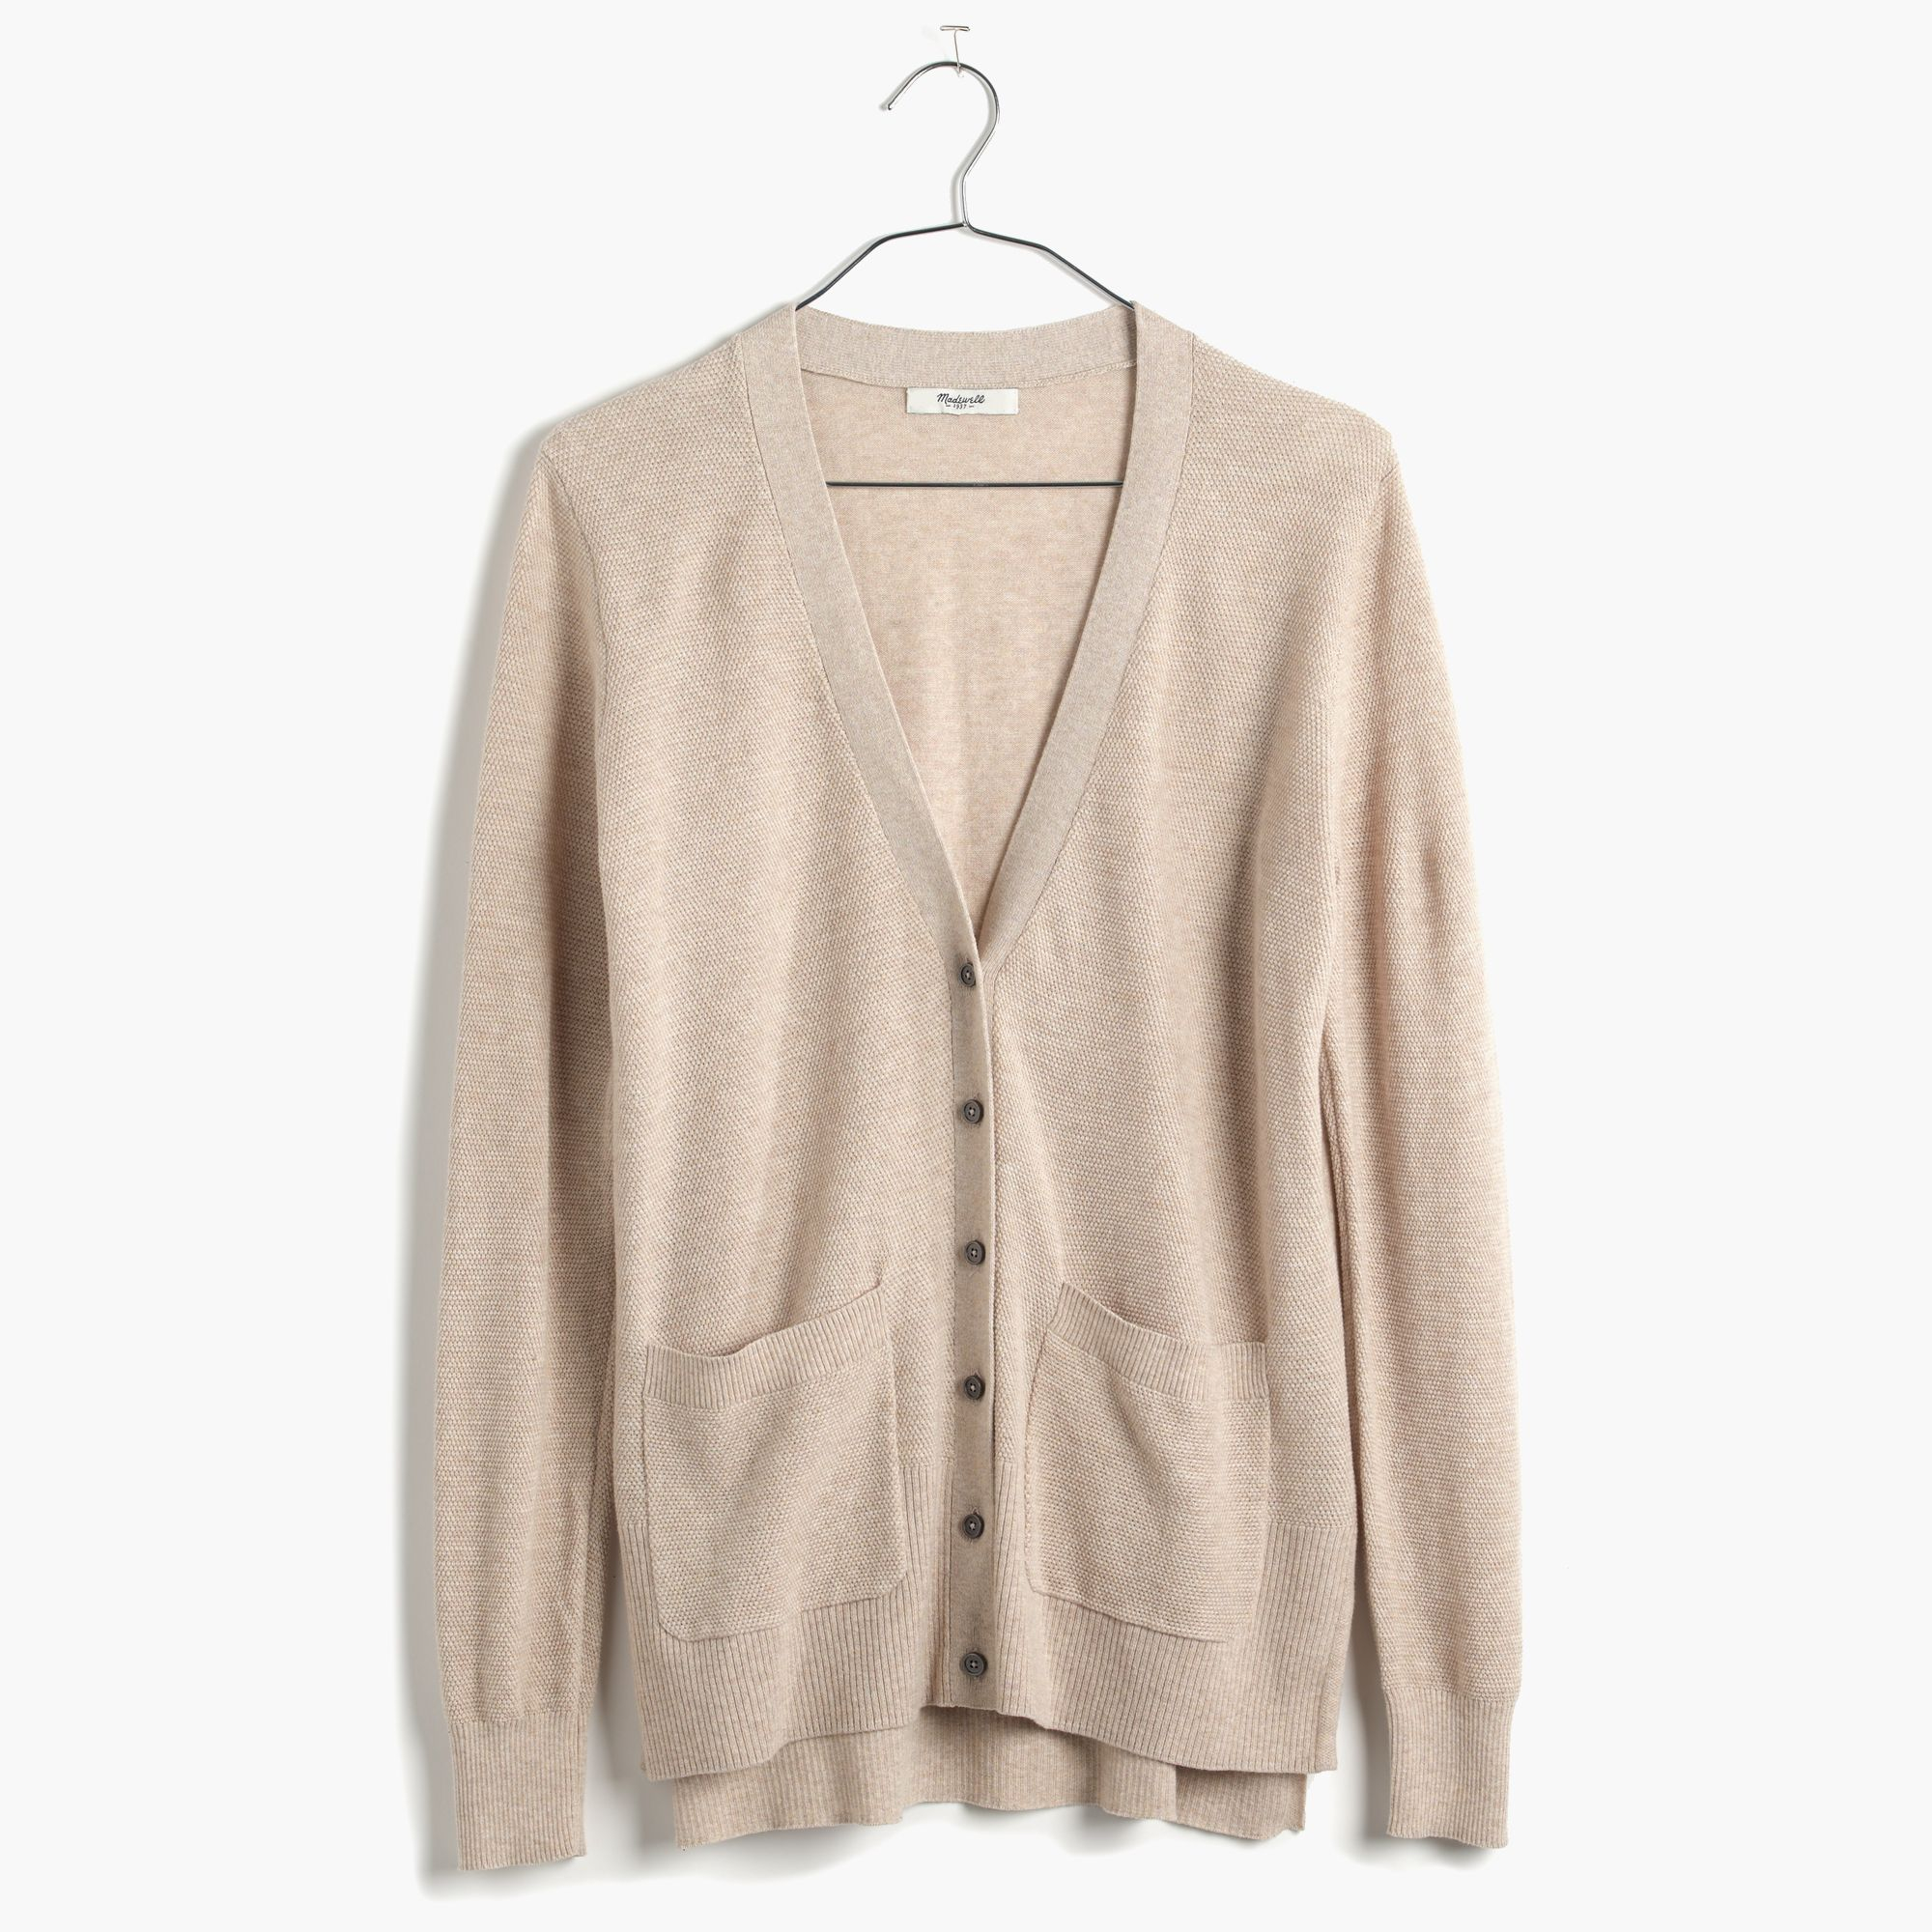 Madewell Spring-weight Cardigan Sweater in Natural | Lyst